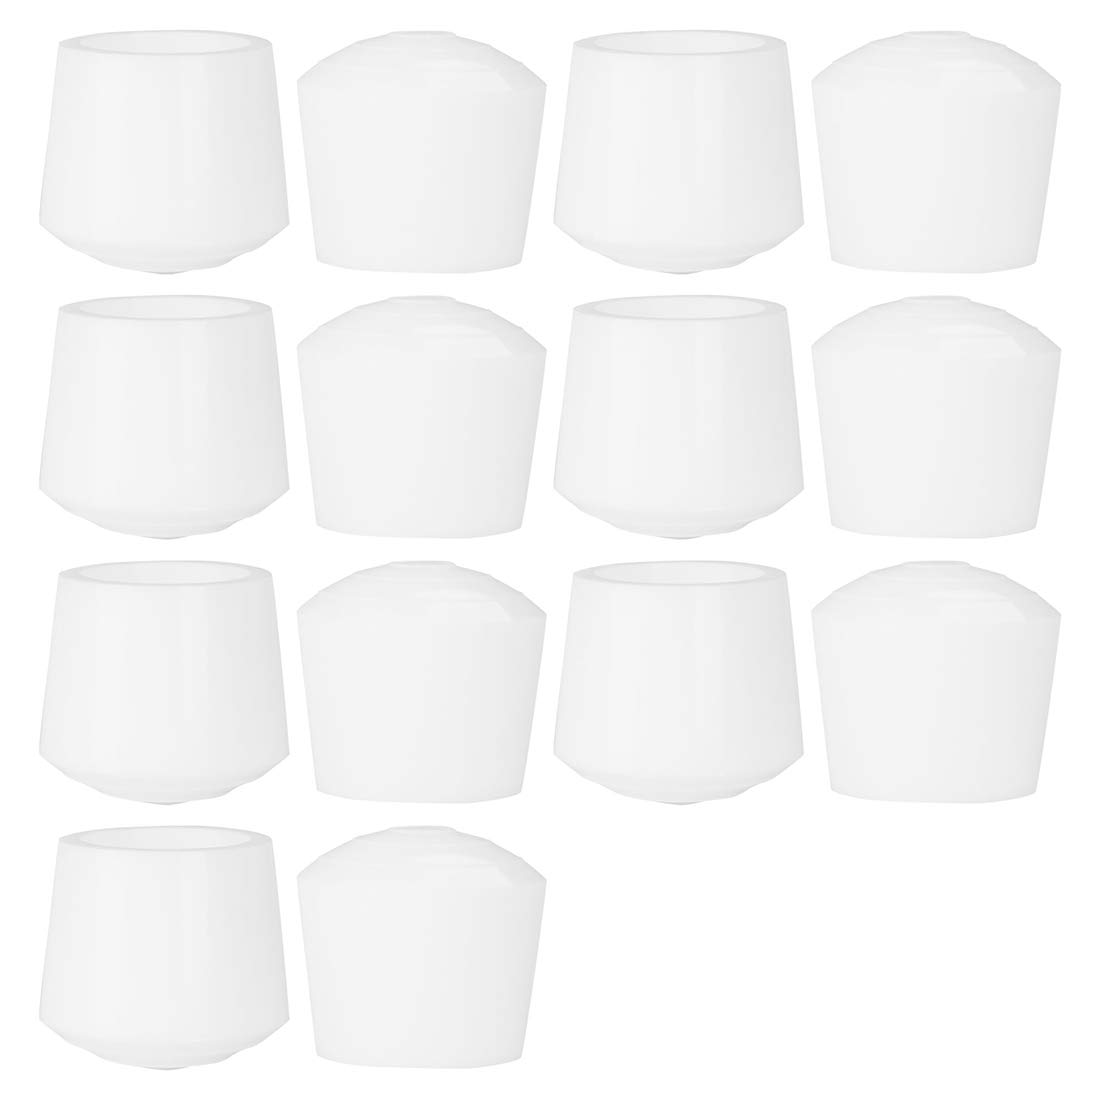 uxcell 14pcs Leg Caps Tips 35mm 1 3/8 Inch Anti Slip Rubber Furniture Table Feet Cover Floor Protector Reduce Noise Prevent Scratches